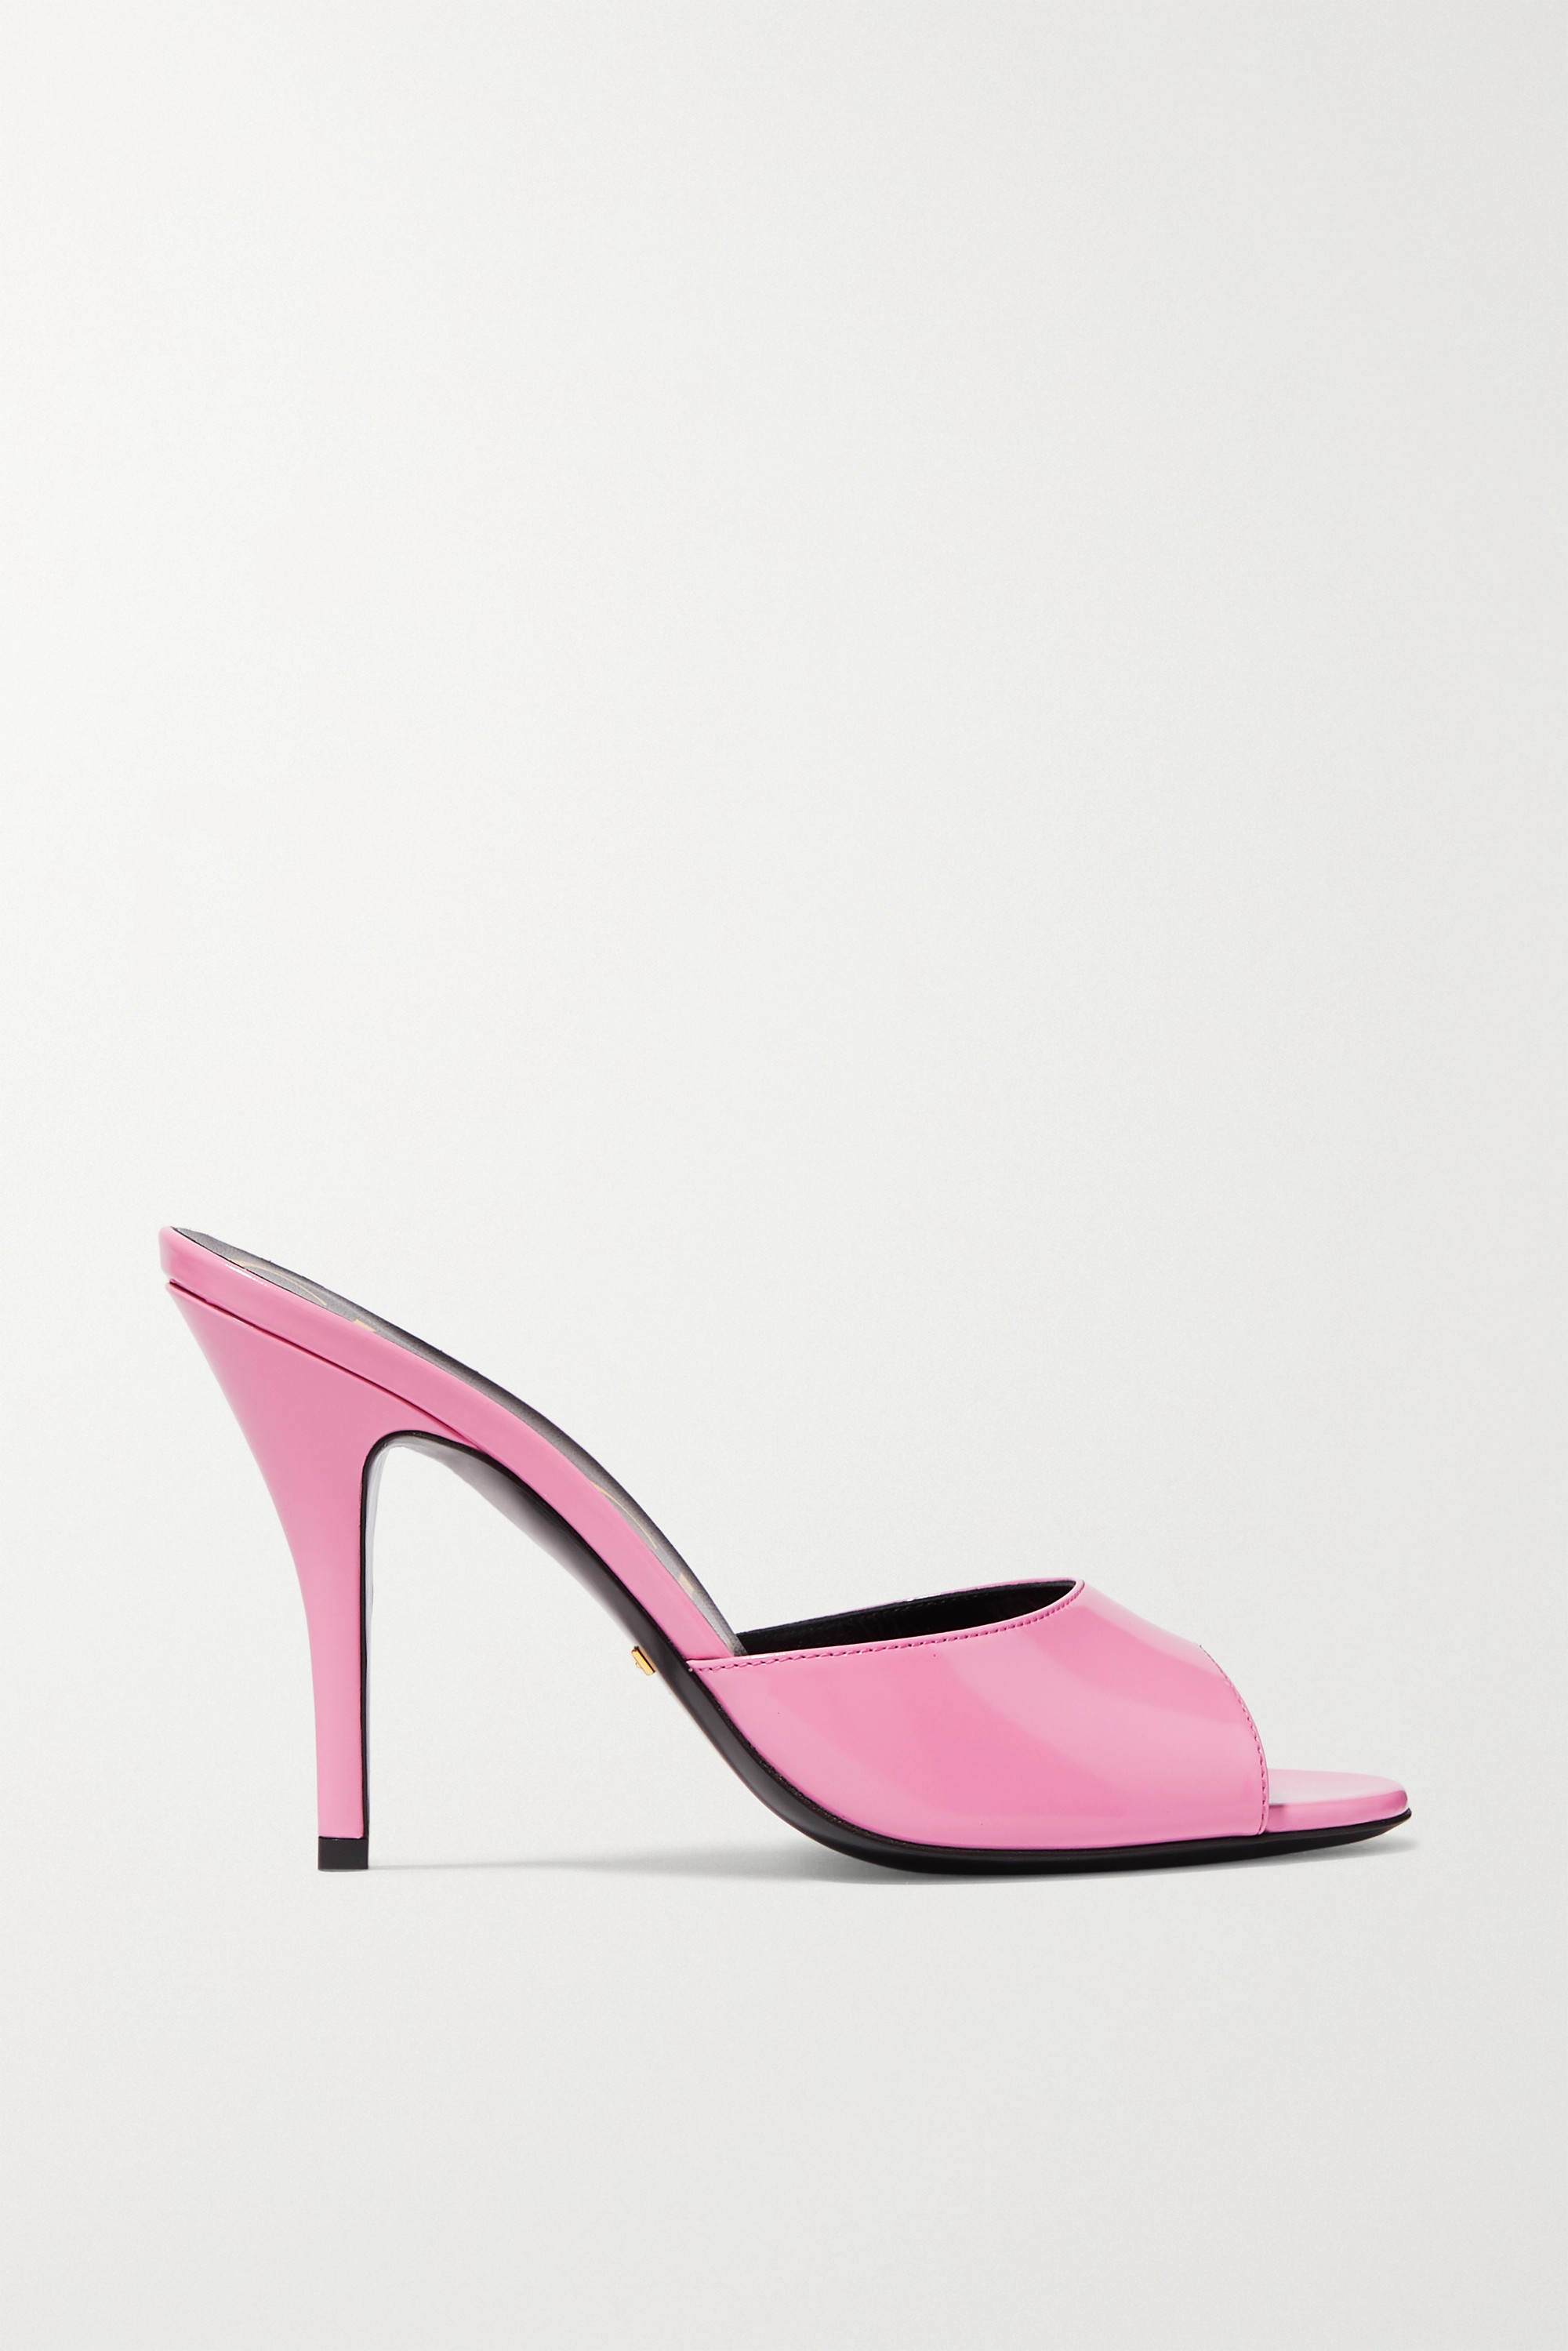 Gucci Scarlet glossed-leather mules